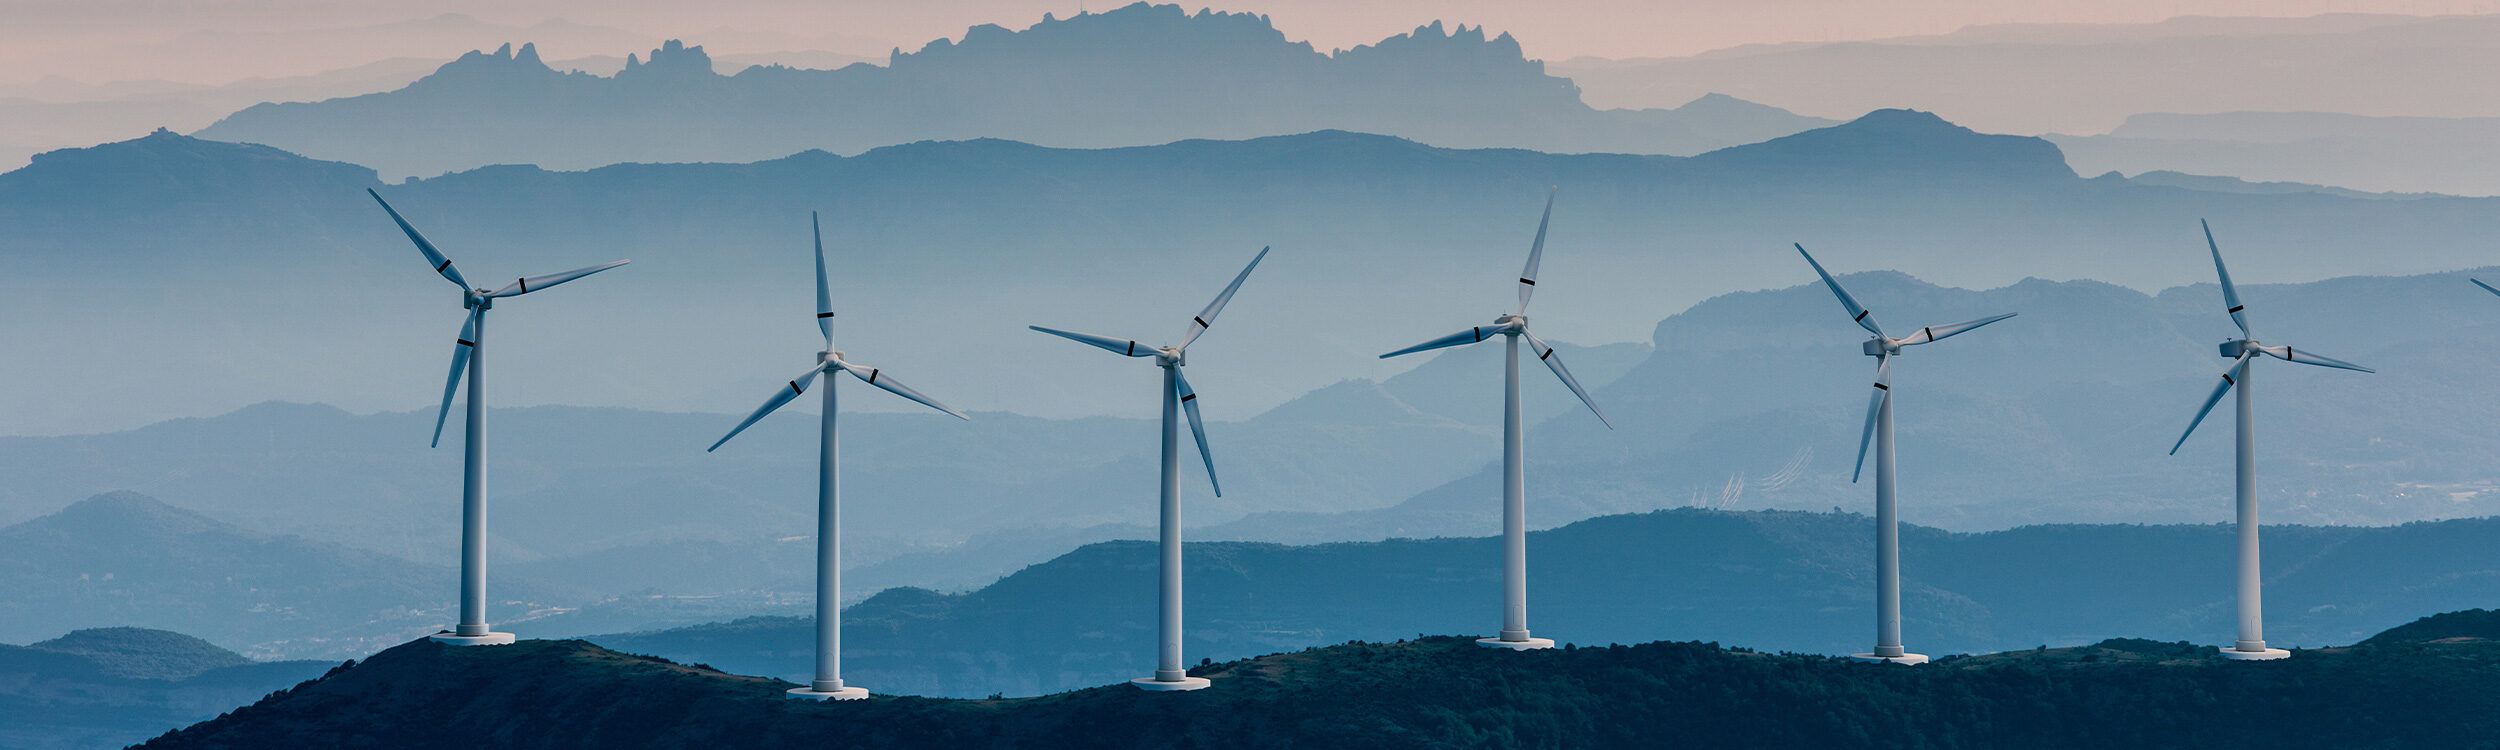 Puget Sound Energy Shares How SAP SuccessFactors Allowed Them to Take Charge of Change featured image